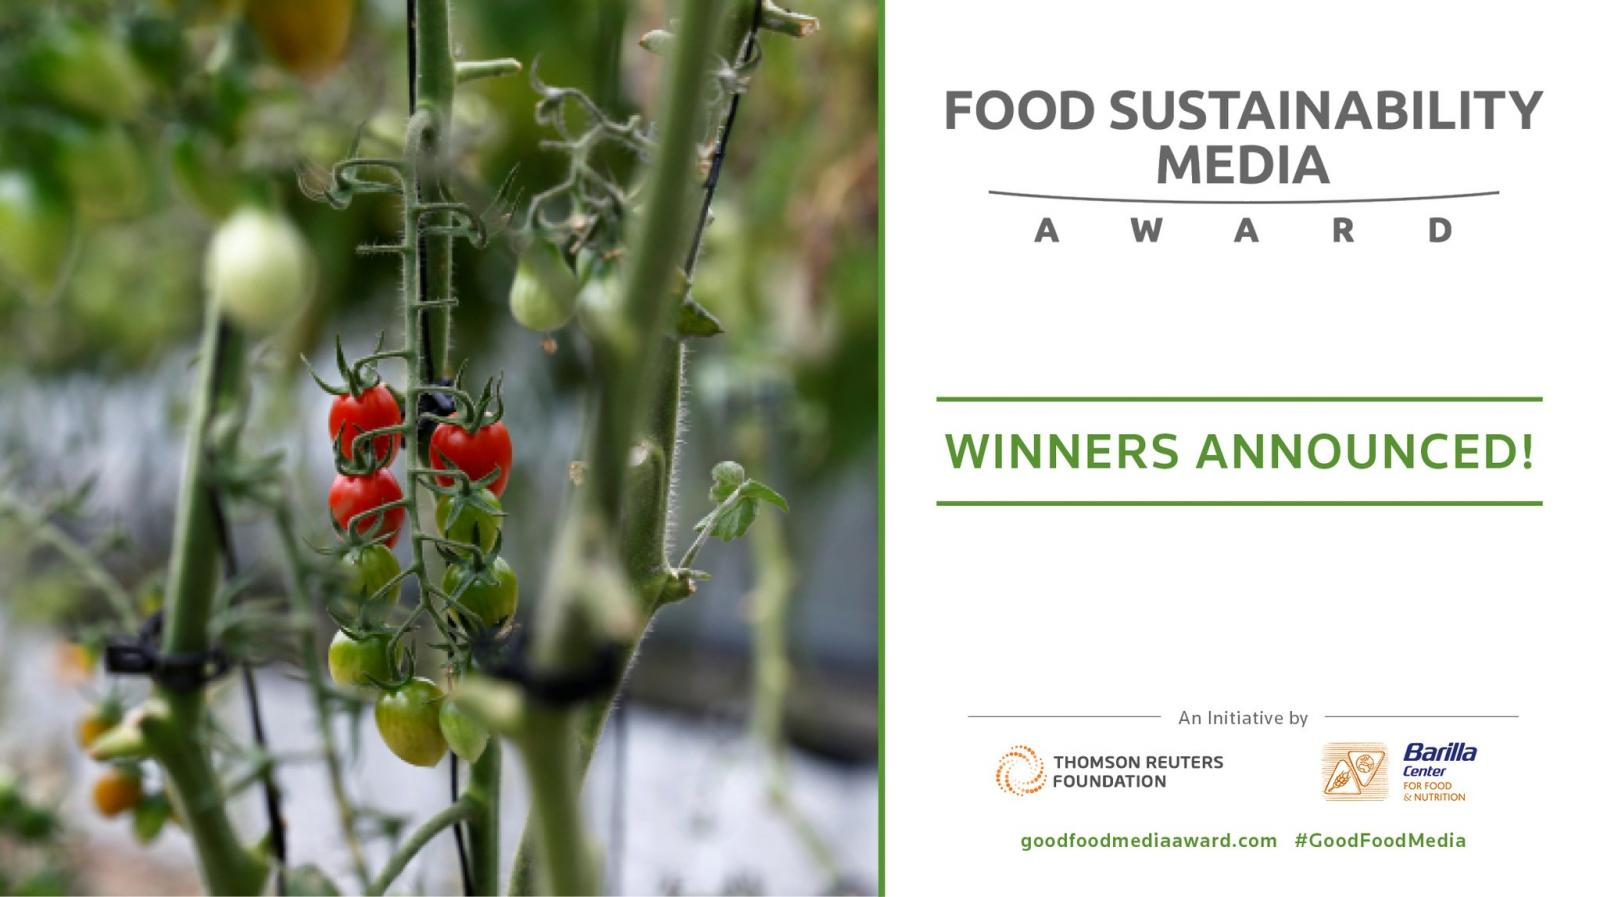 Image from the Food Sustainability Media Award